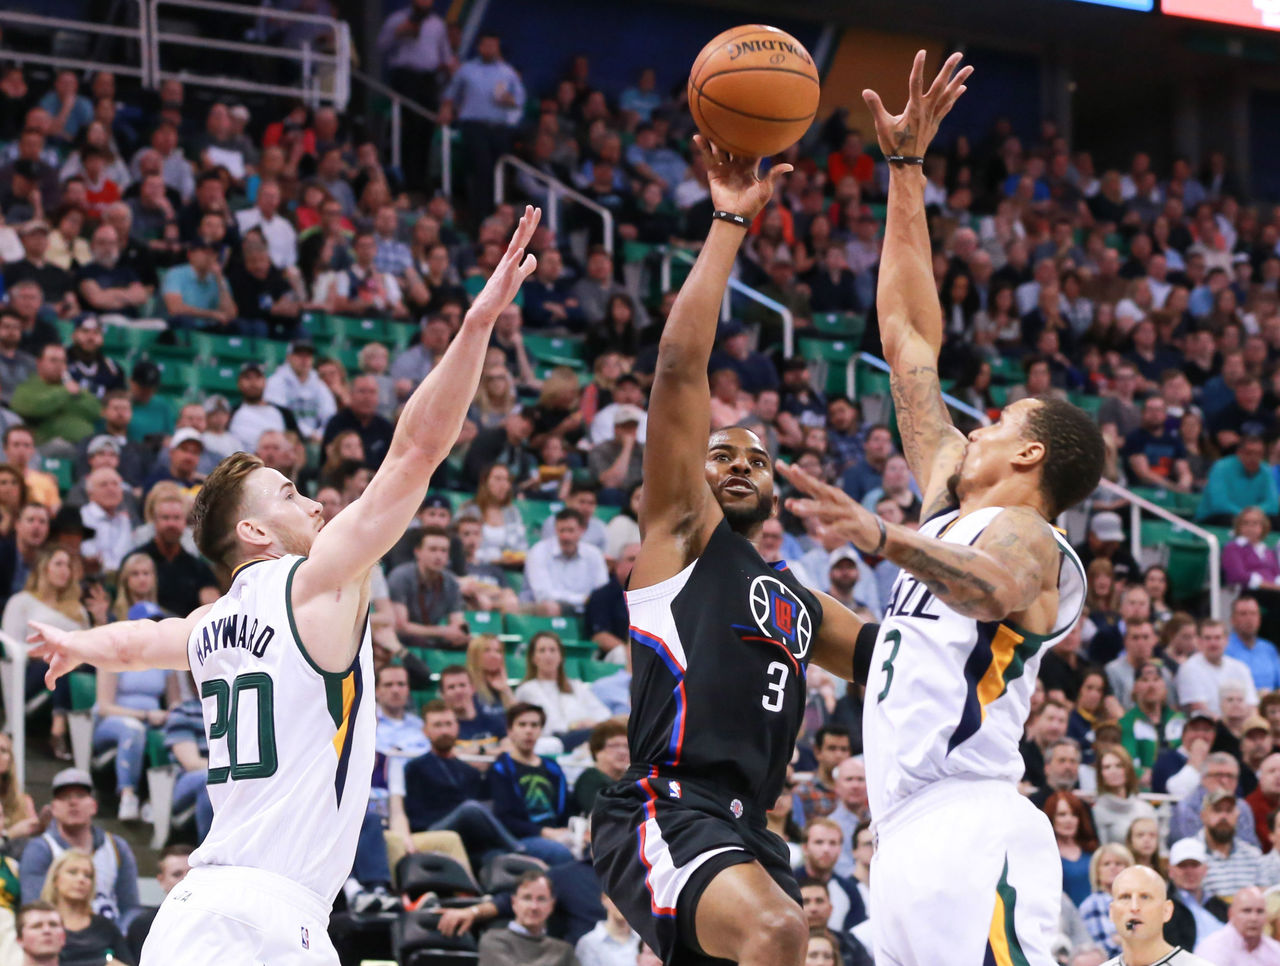 Cropped_2017-03-14t014752z_1443244781_nocid_rtrmadp_3_nba-los-angeles-clippers-at-utah-jazz